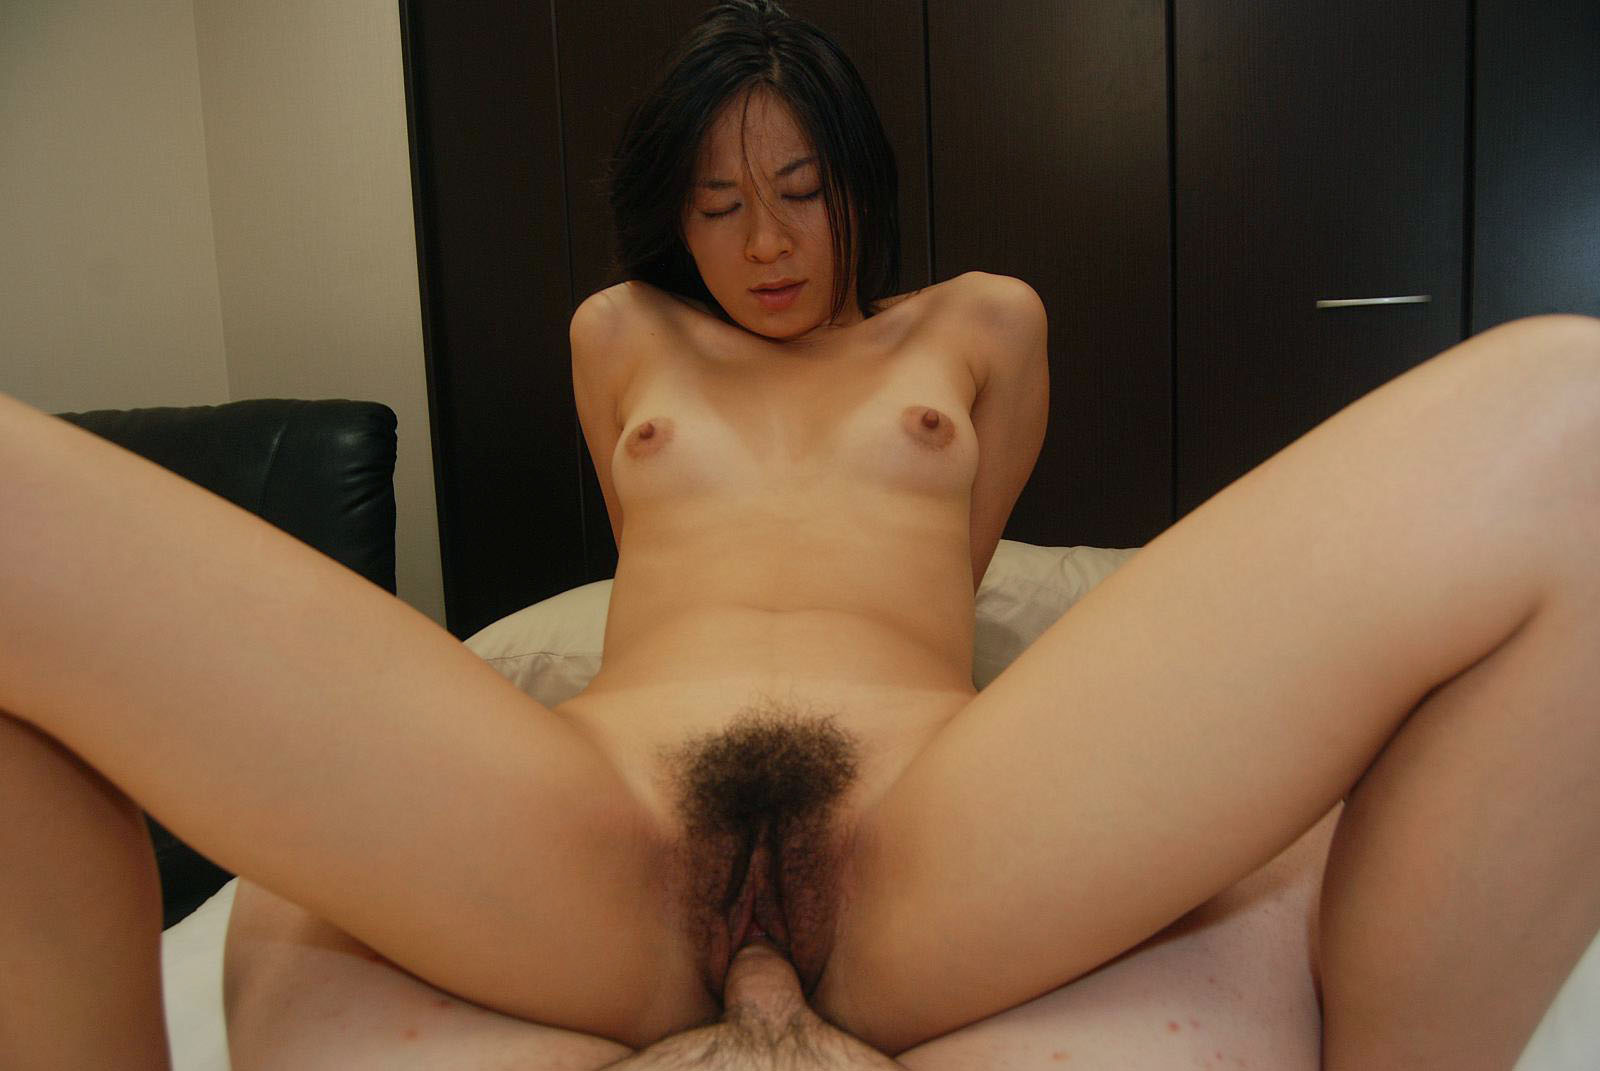 Your moms hairy pussy 14 that necessary